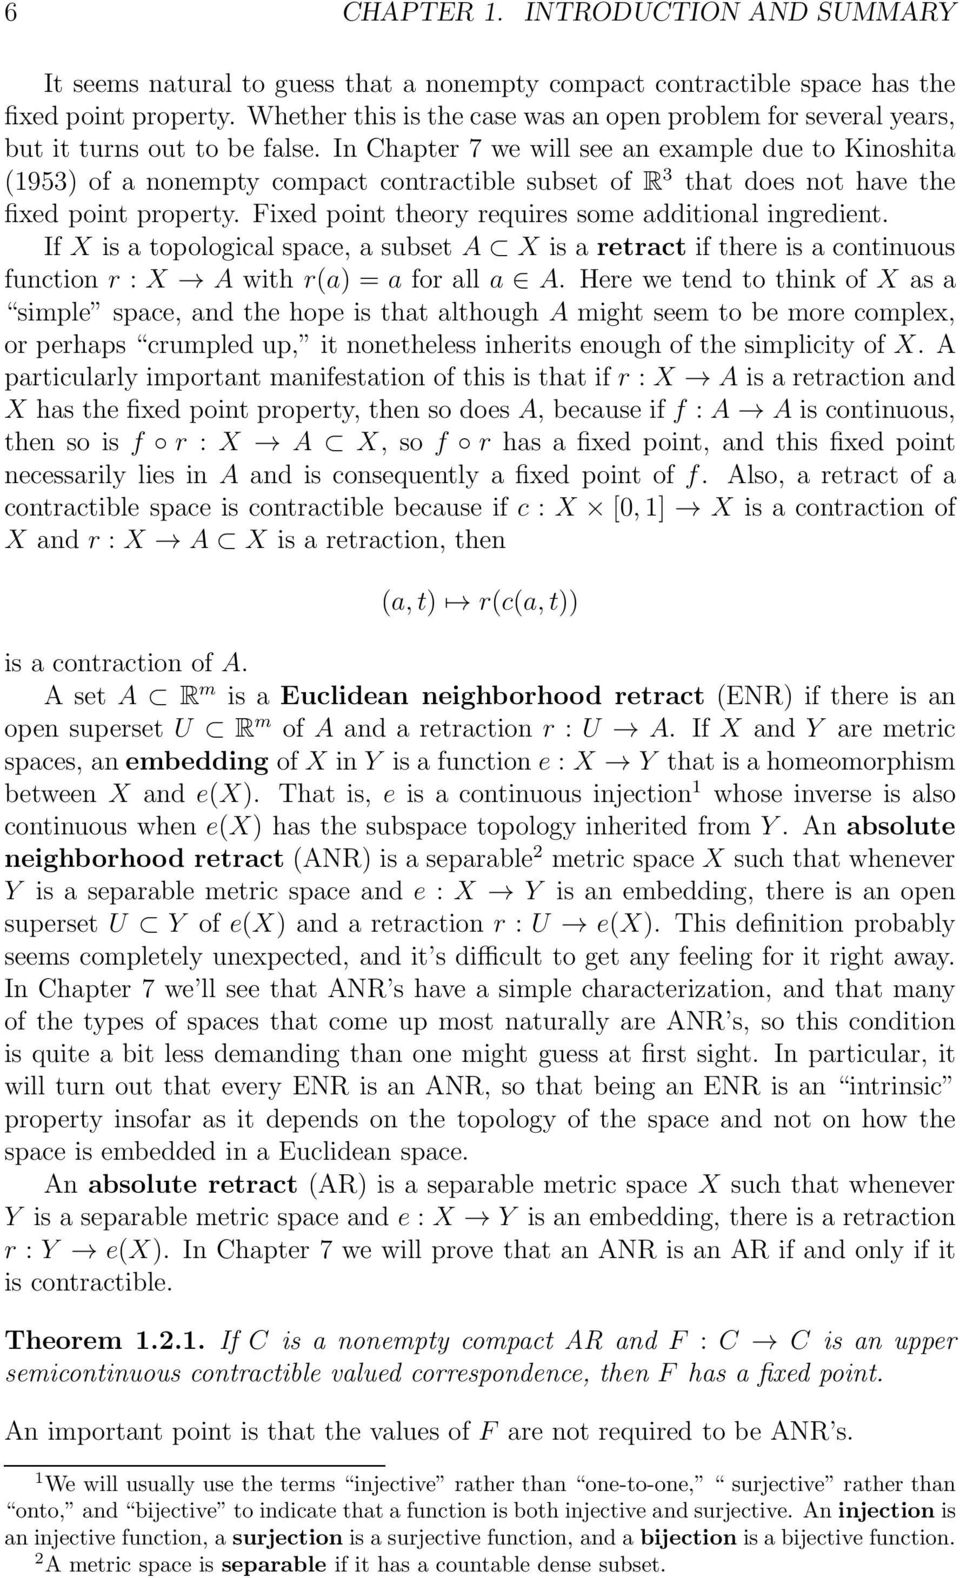 In Chapter 7 we will see an example due to Kinoshita (1953) of a nonempty compact contractible subset of R 3 that does not have the fixed point property.